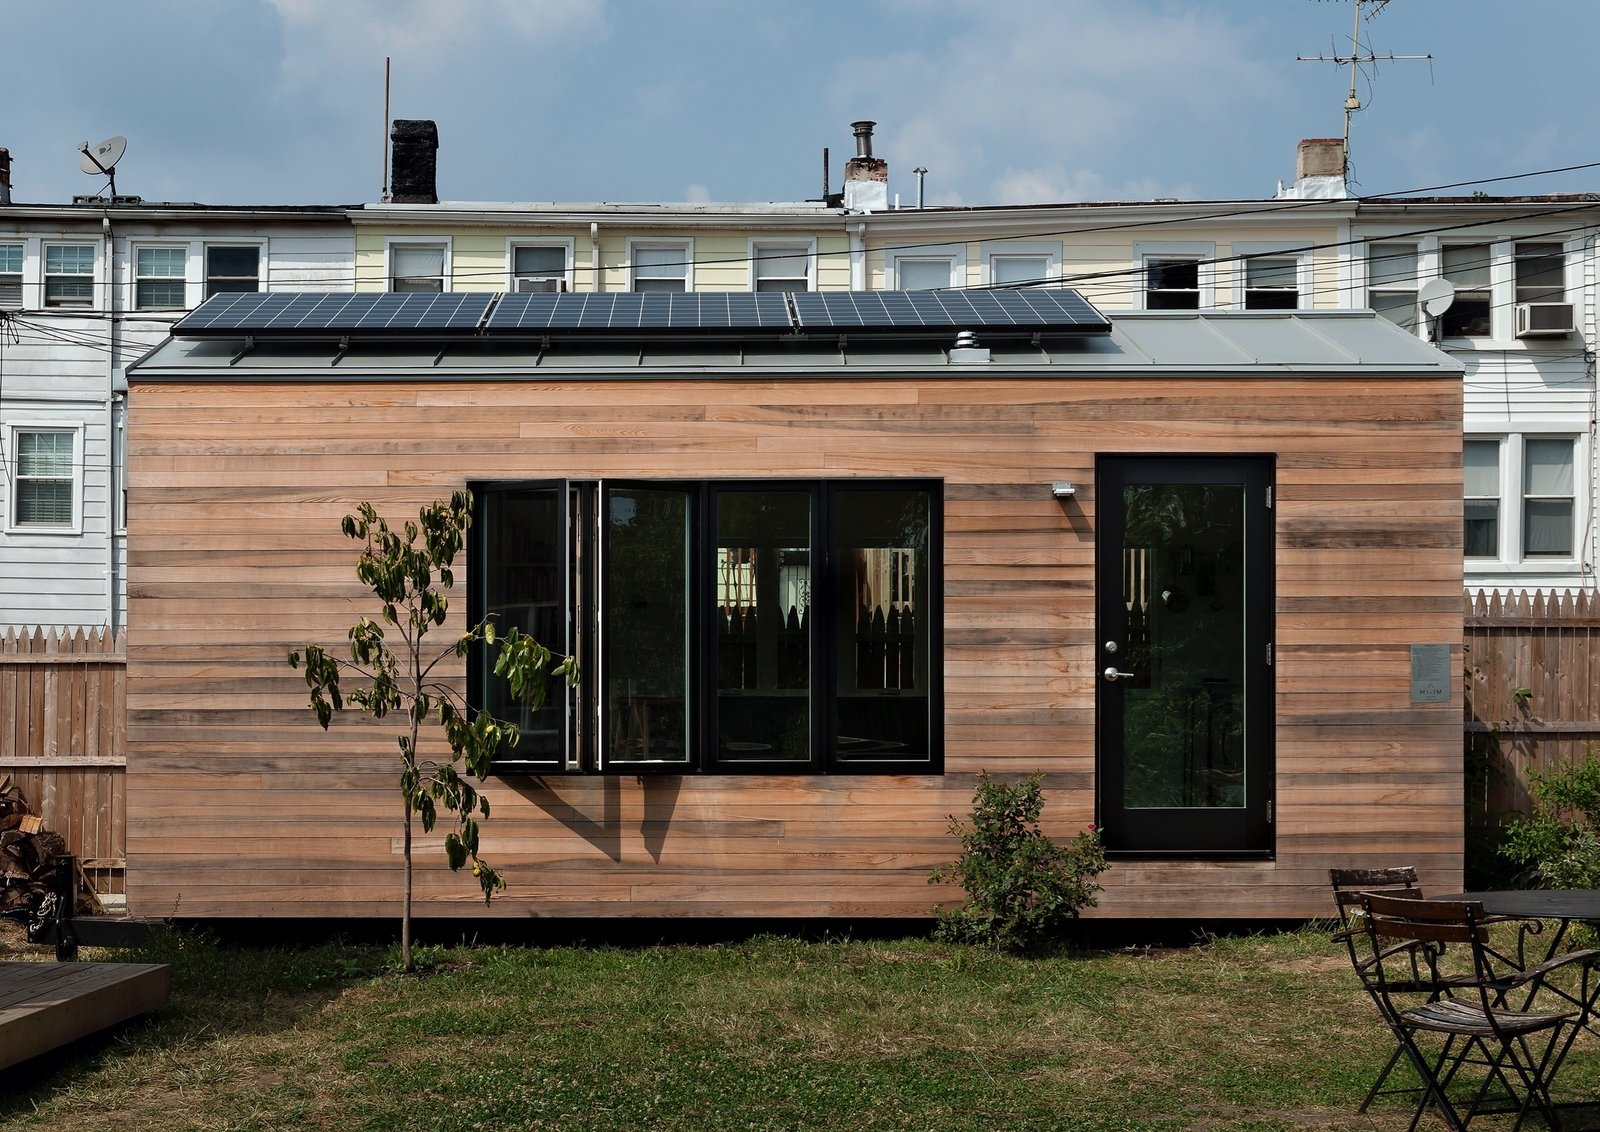 Minim lets you build your own tiny house for $35,000. Their homes are wrapped in shiplapped cypress that will patina and turn a silvery gray tone. A 960-watt solar array on the roof can be battery powered, allowing the home to operate completely off-grid.